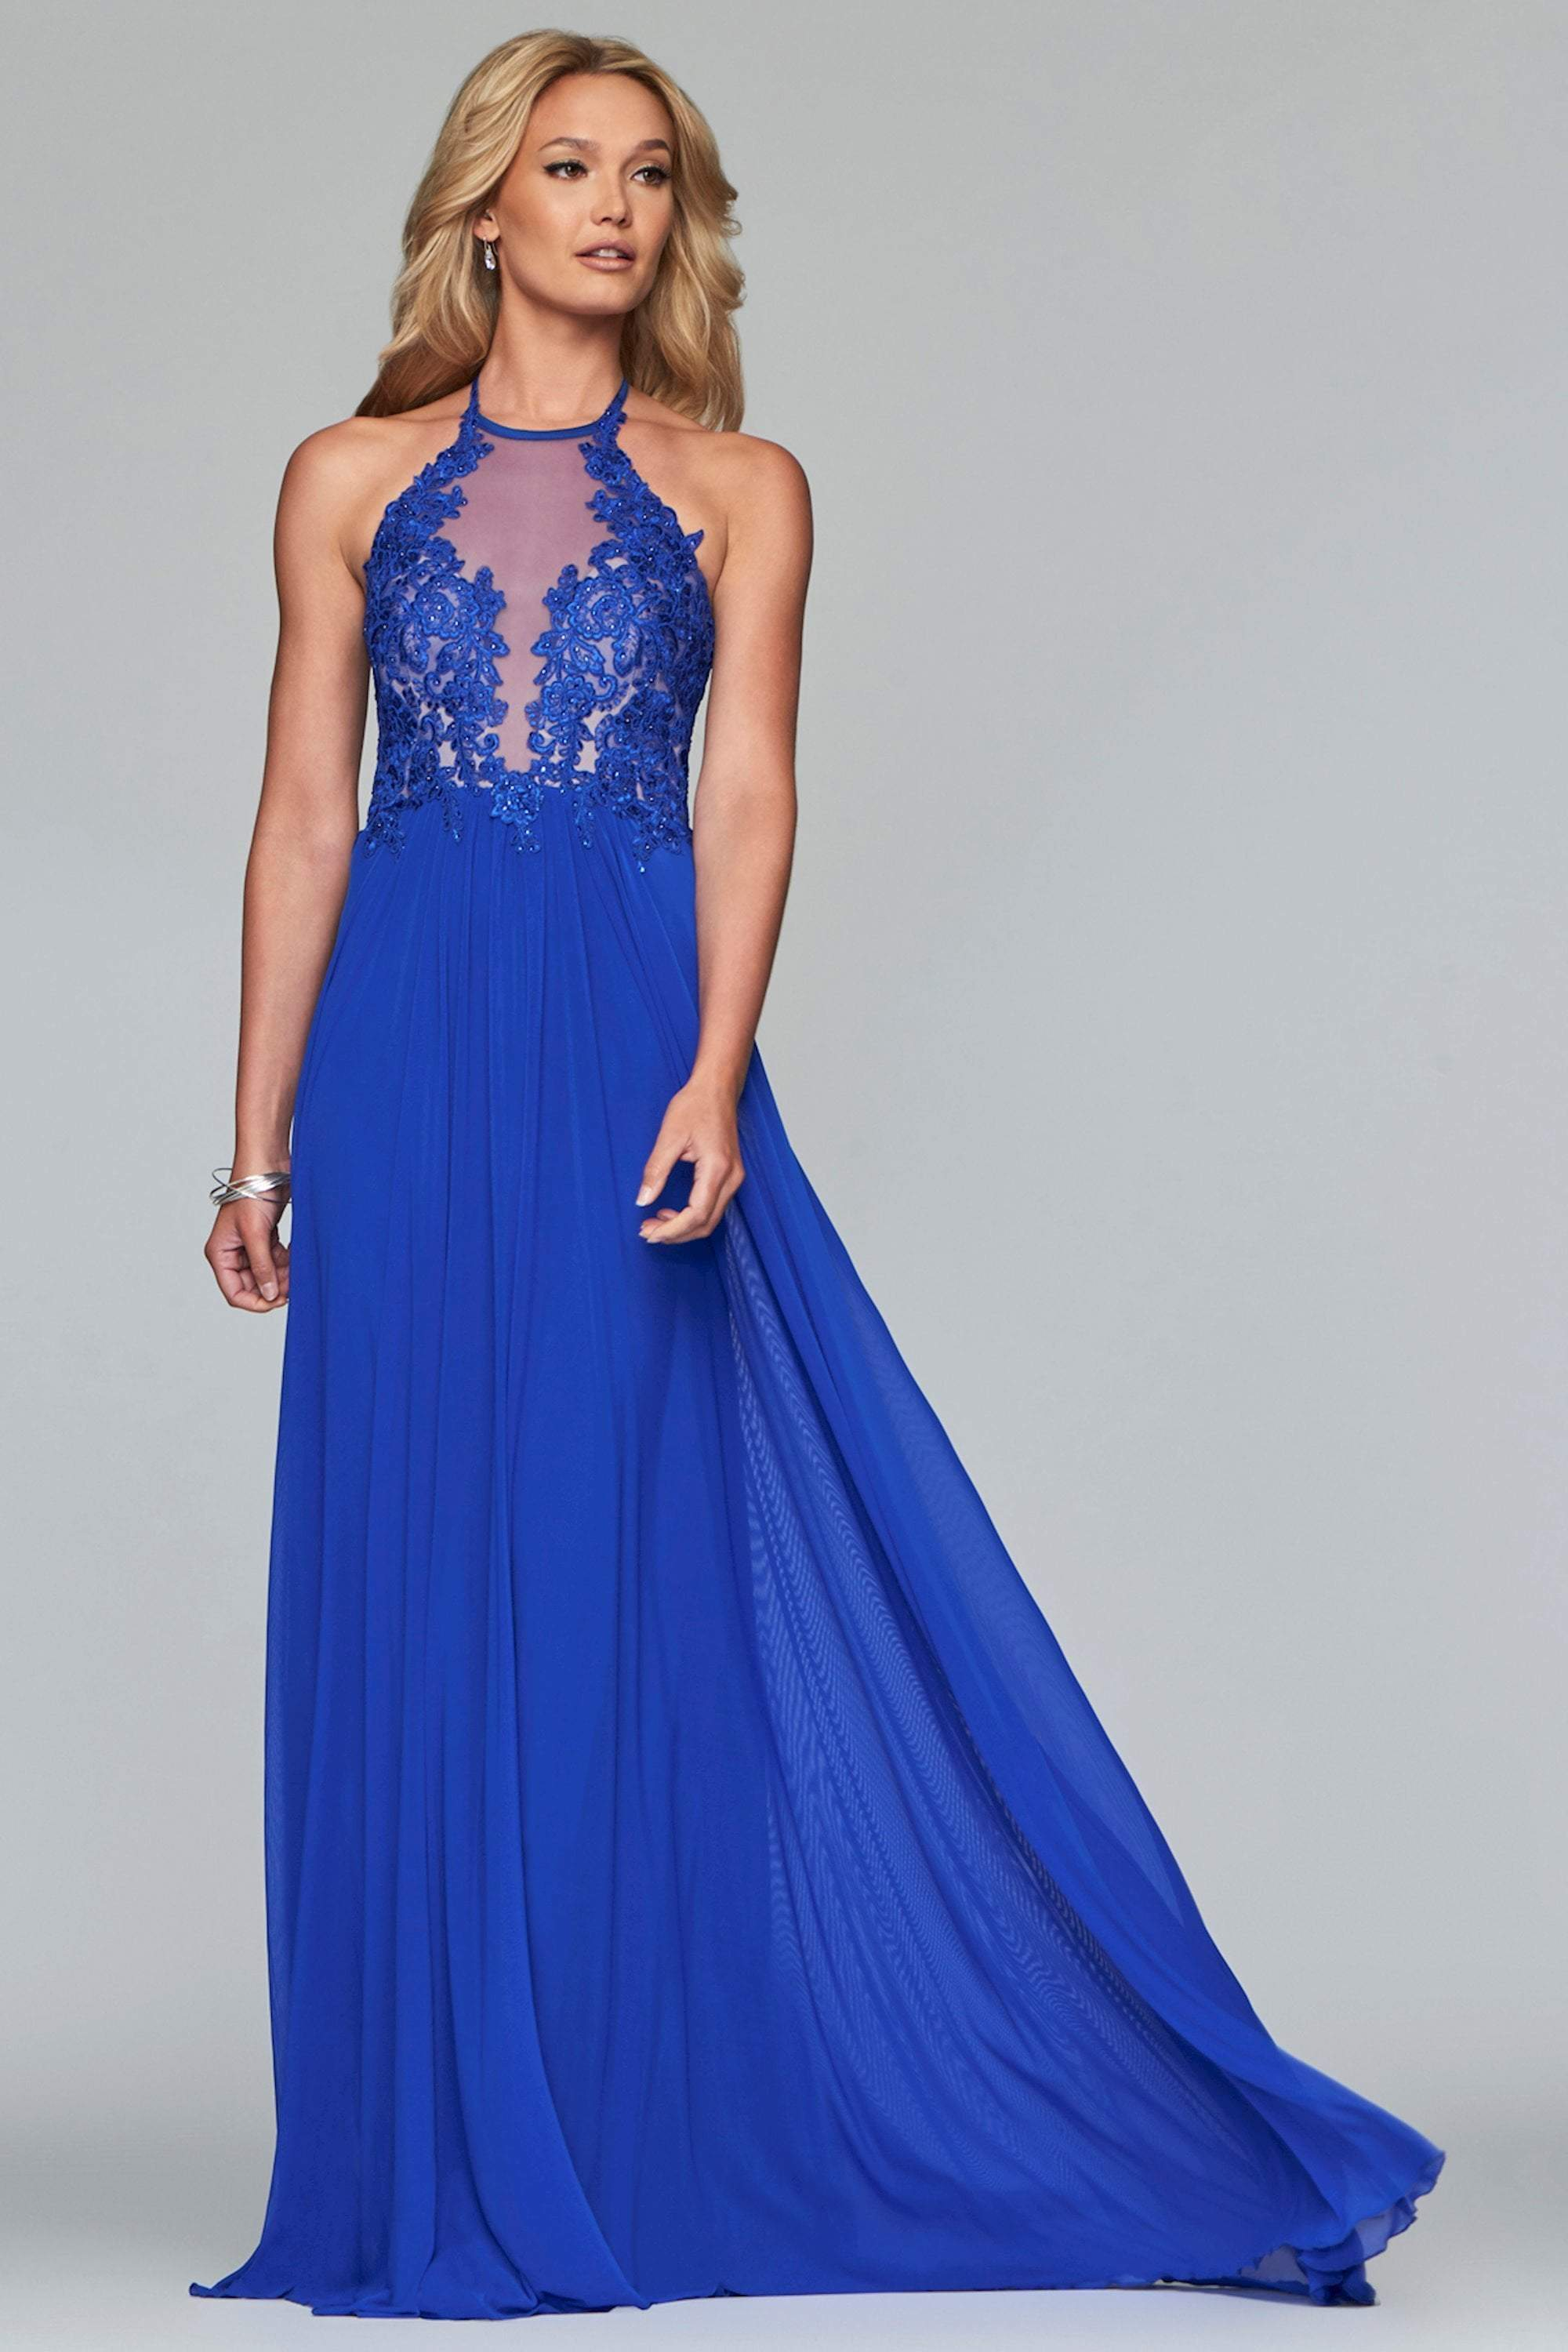 Faviana - Lace Appliqued Illusion Halter Evening Dress S10203  In Blue